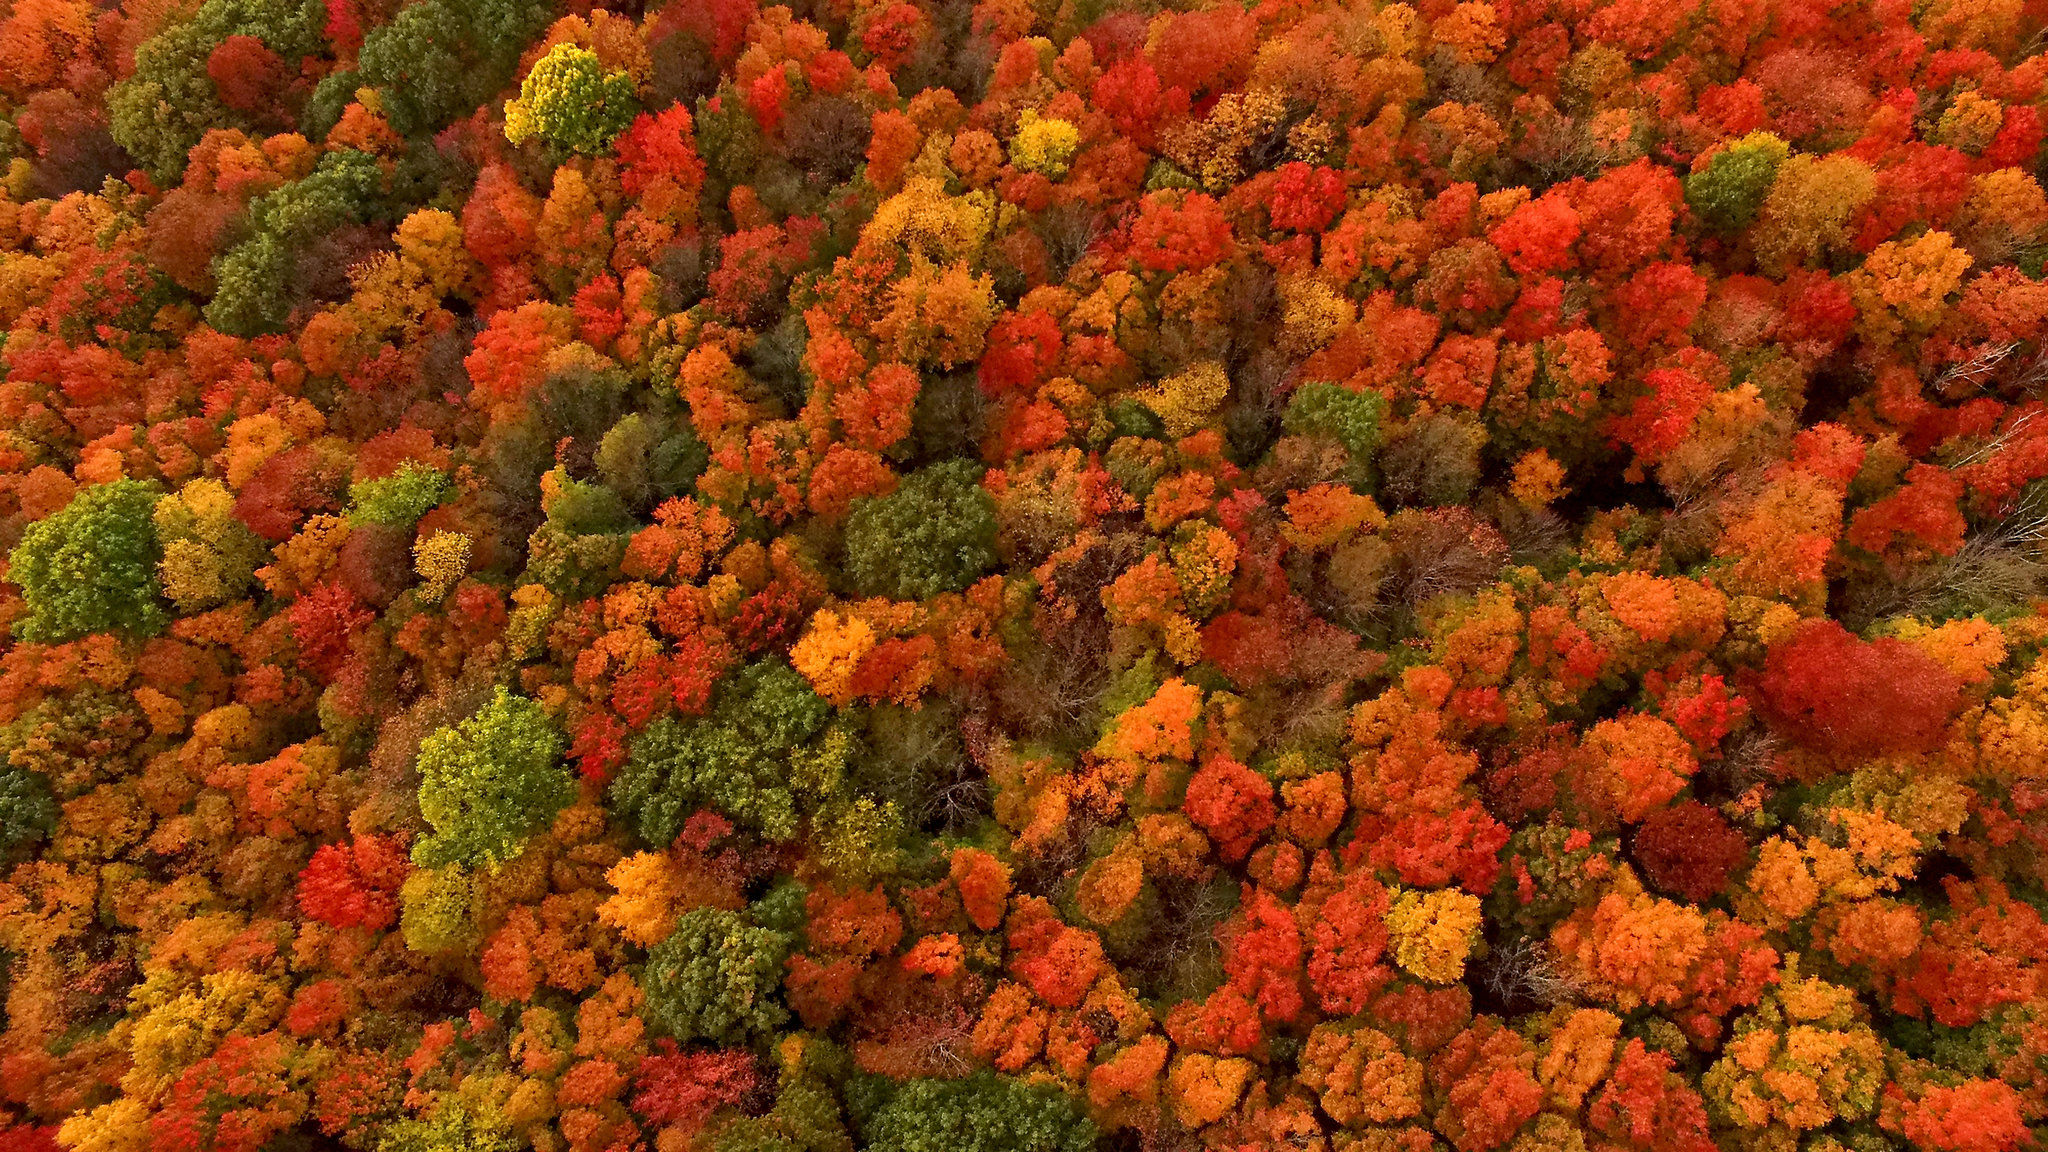 Why Does Fall Foliage Turn So Red And Fiery? It Depends